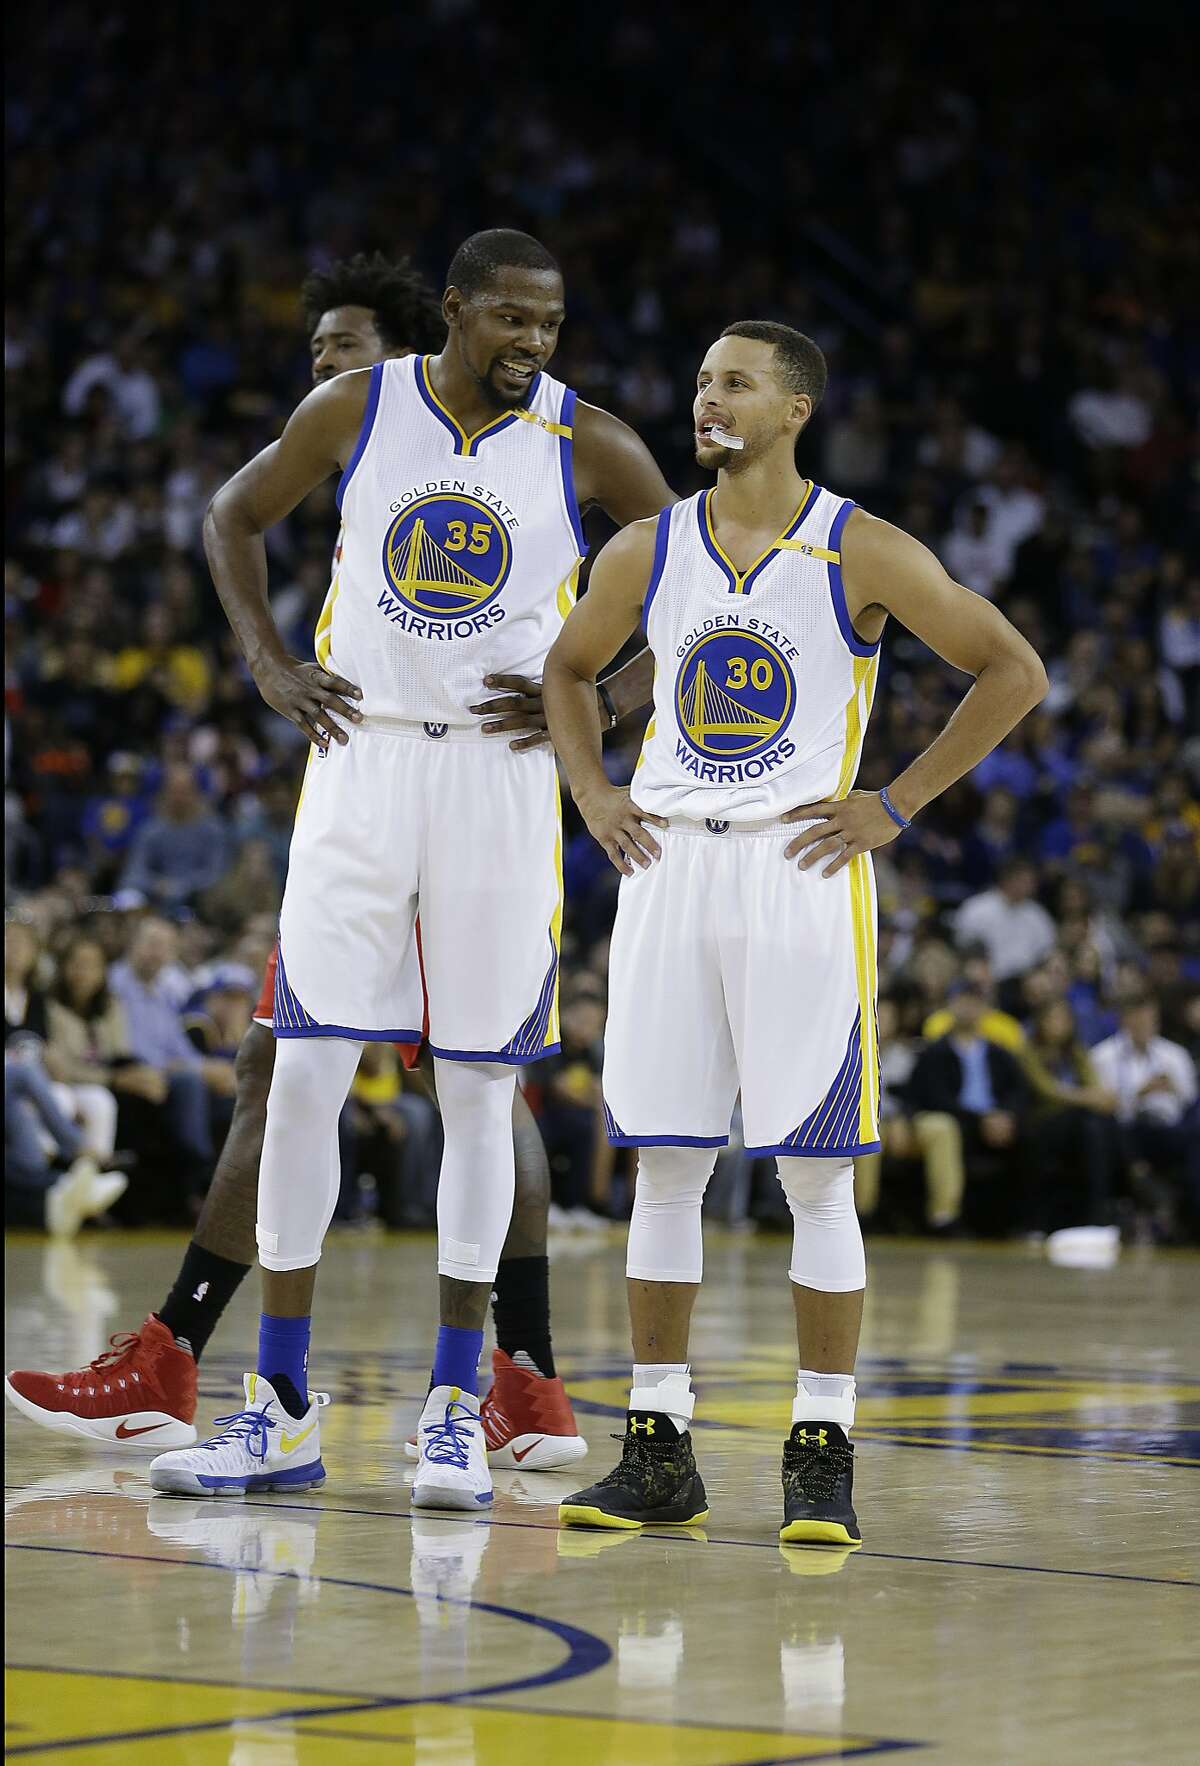 Golden State Warriors' Kevin Durant, left, speaks with Stephen Curry (30) during the first half of a pre-season NBA basketball game against the Los Angeles Clippers Tuesday, Oct. 4, 2016, in Oakland, Calif. (AP Photo/Ben Margot)